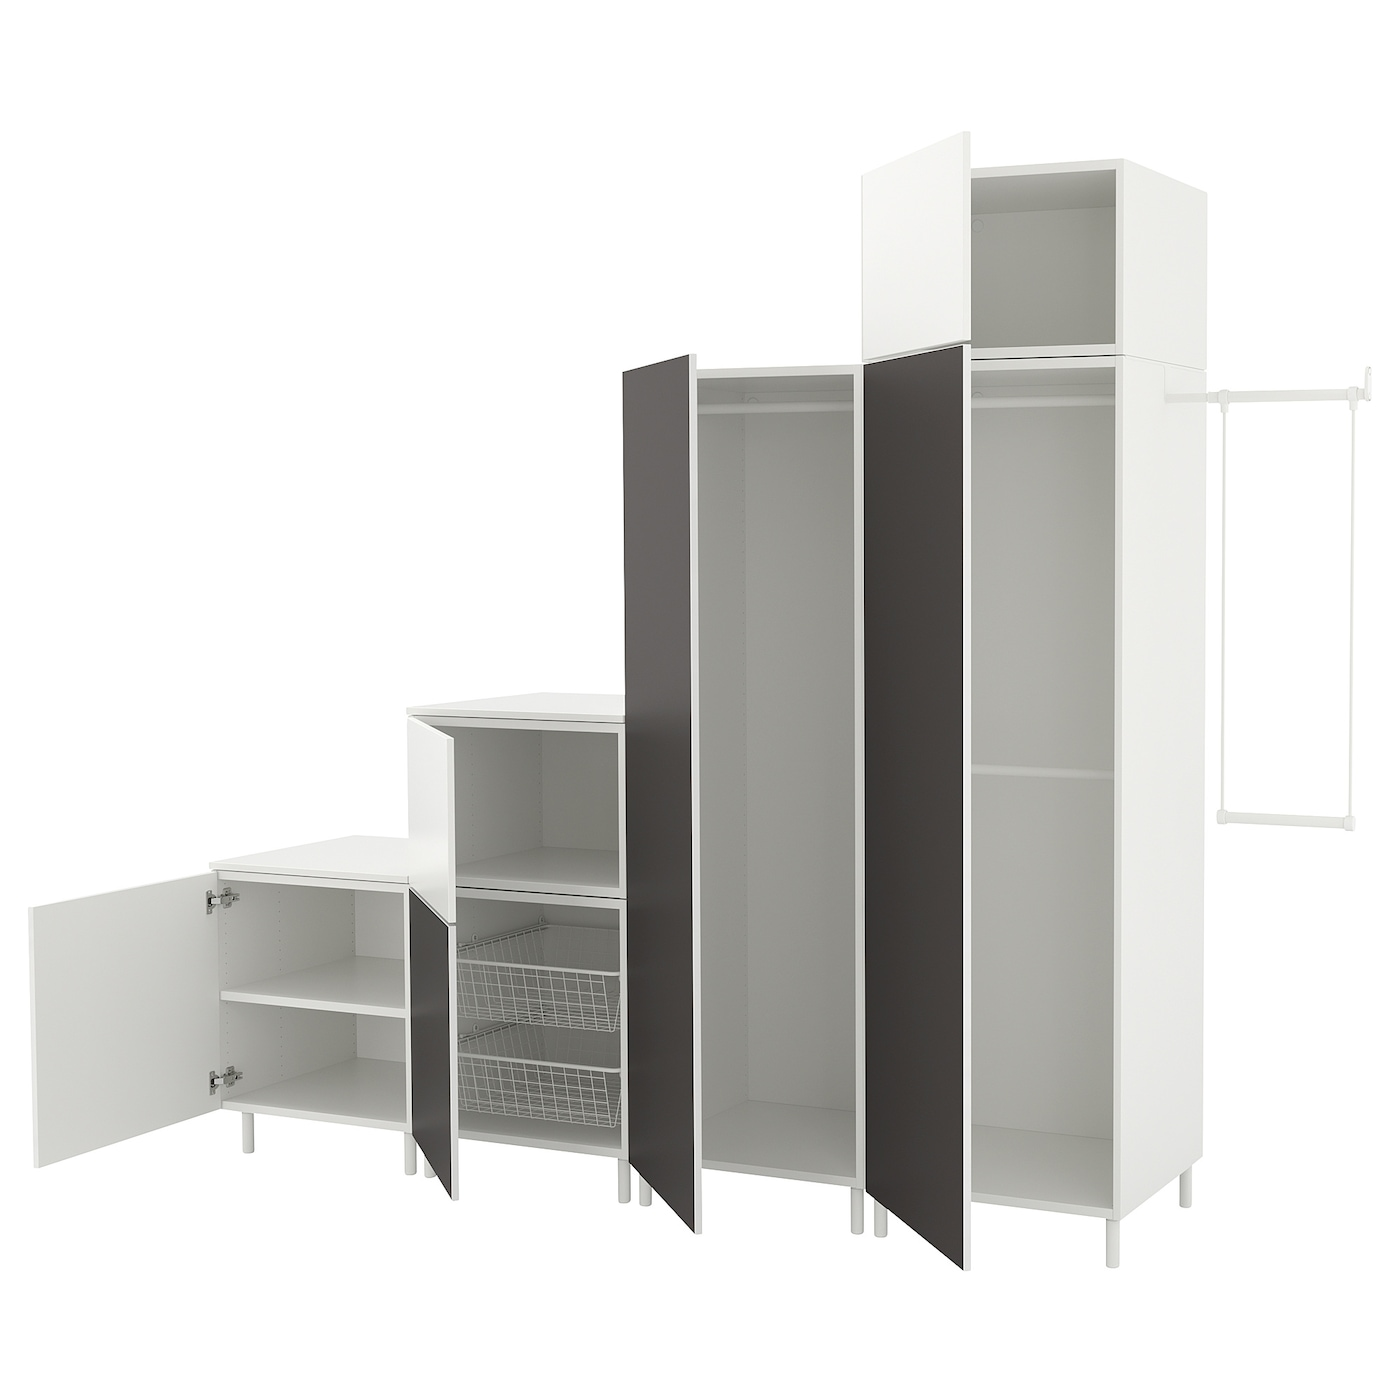 platsa wardrobe white fonnes skatval dark grey 275 300 x 57 x 231 cm ikea. Black Bedroom Furniture Sets. Home Design Ideas